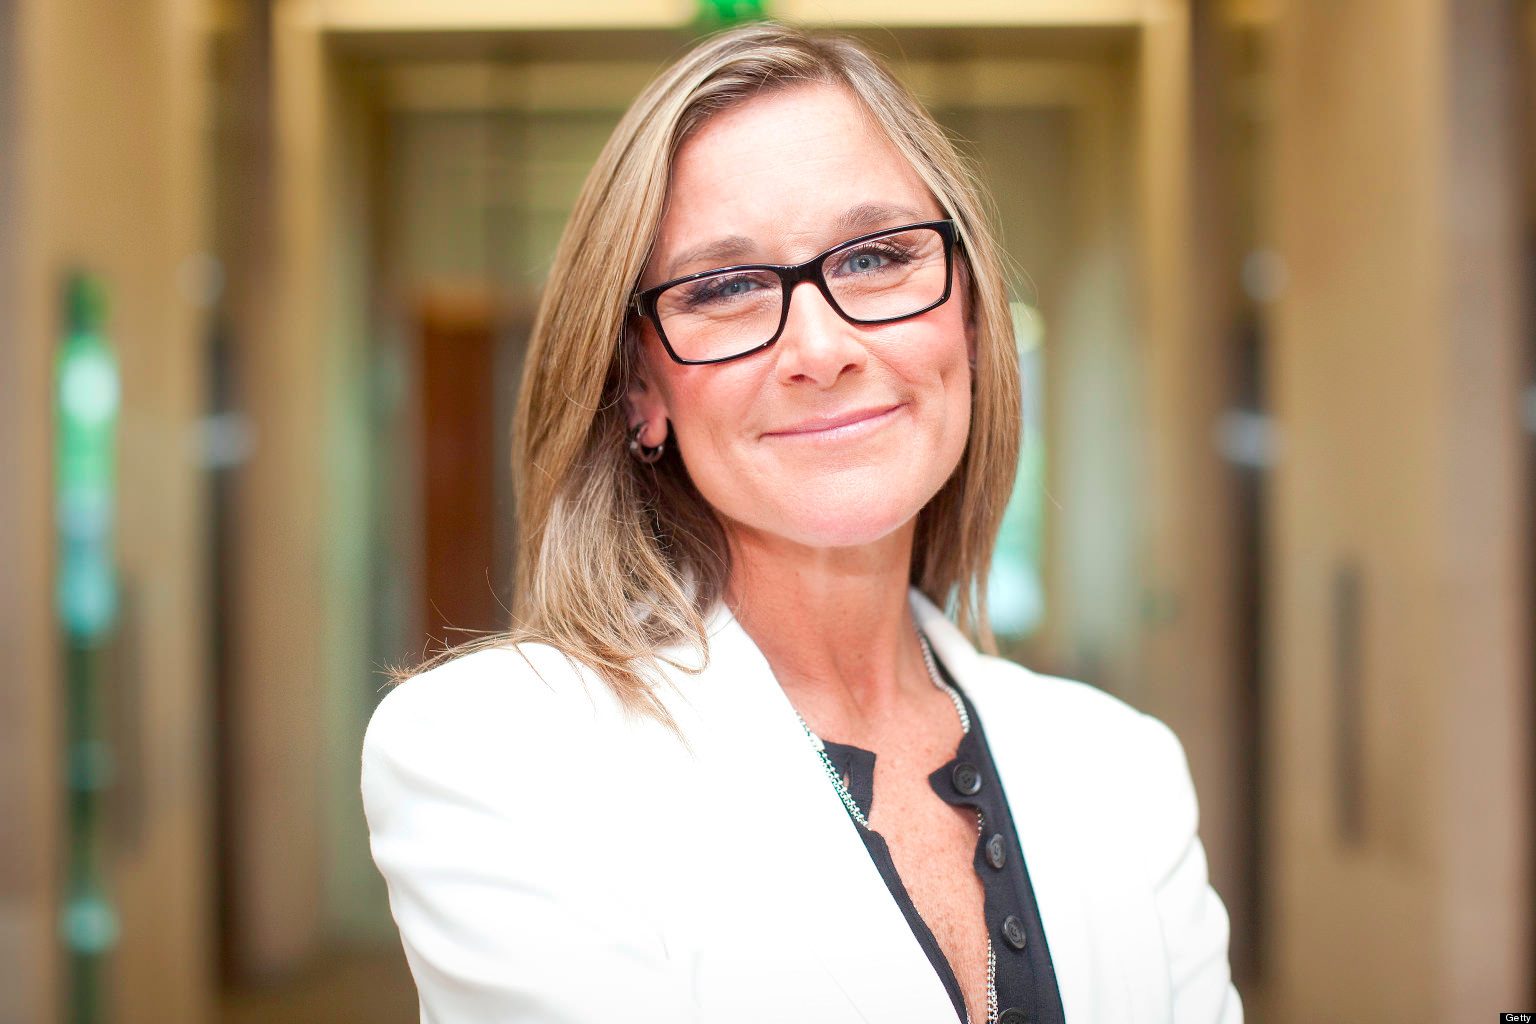 Angela Ahrendts Senior Vice President Apple per i negozi Retail e Online di Apple